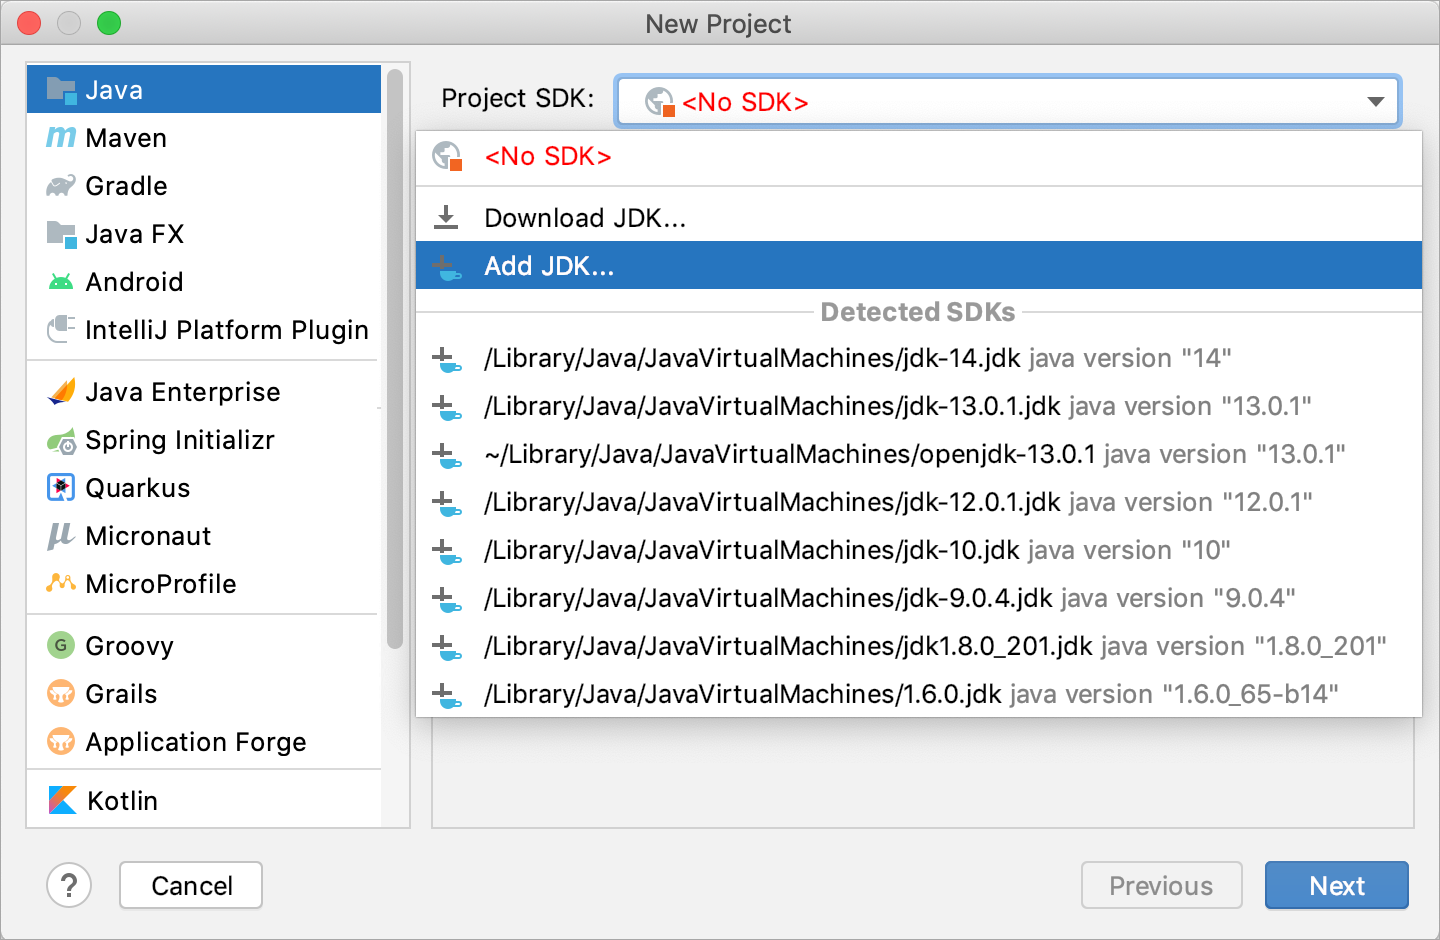 Configuring an SDK for the new project